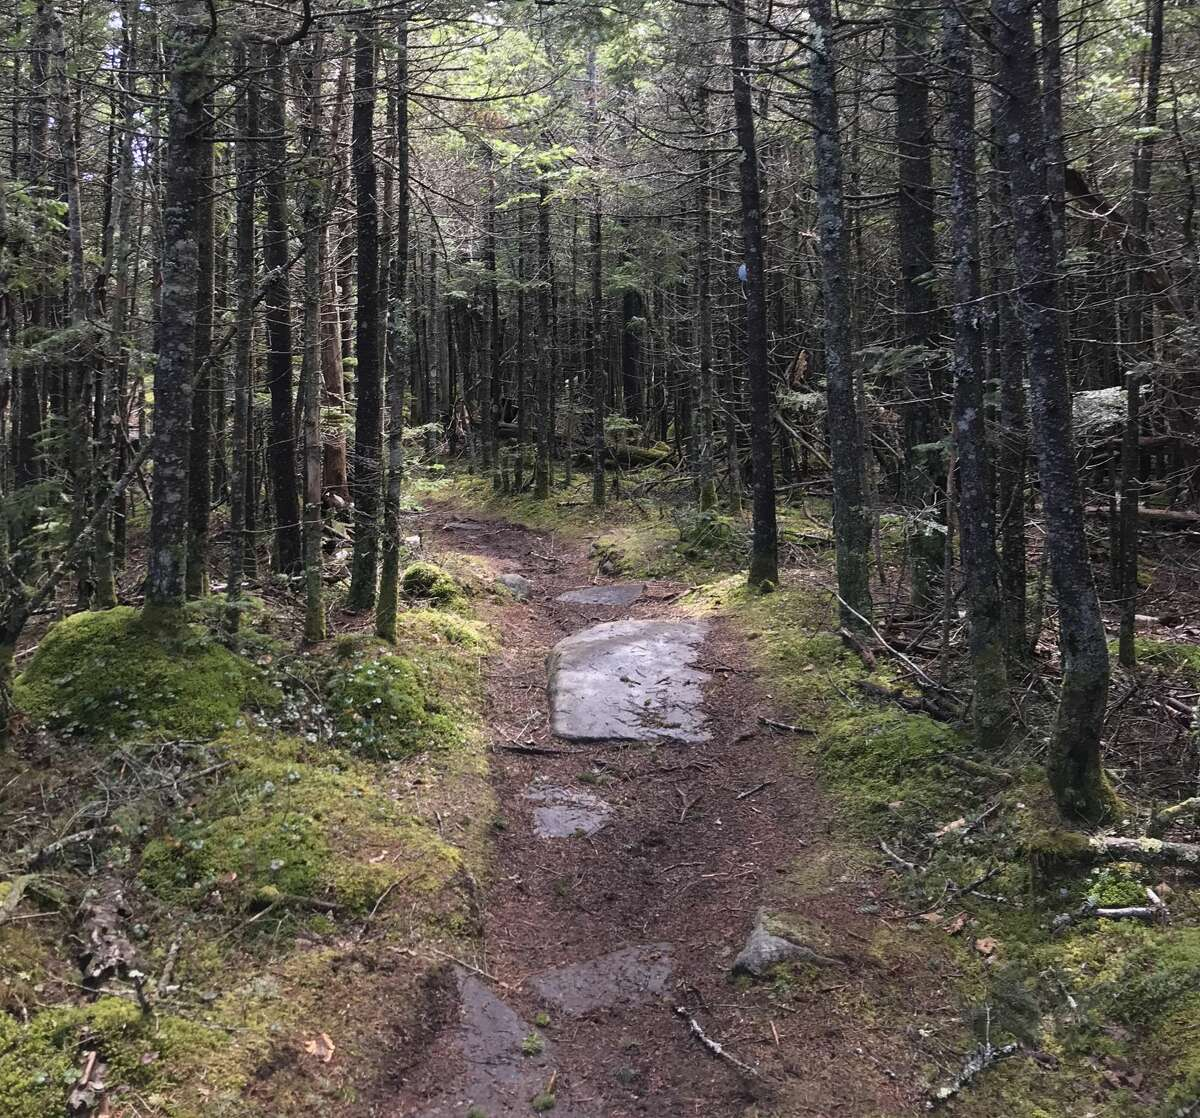 A herd path on Panther Mountain in the Catskills. Herd paths are created when hikers stray off-trail, leading to the destruction of plant life.